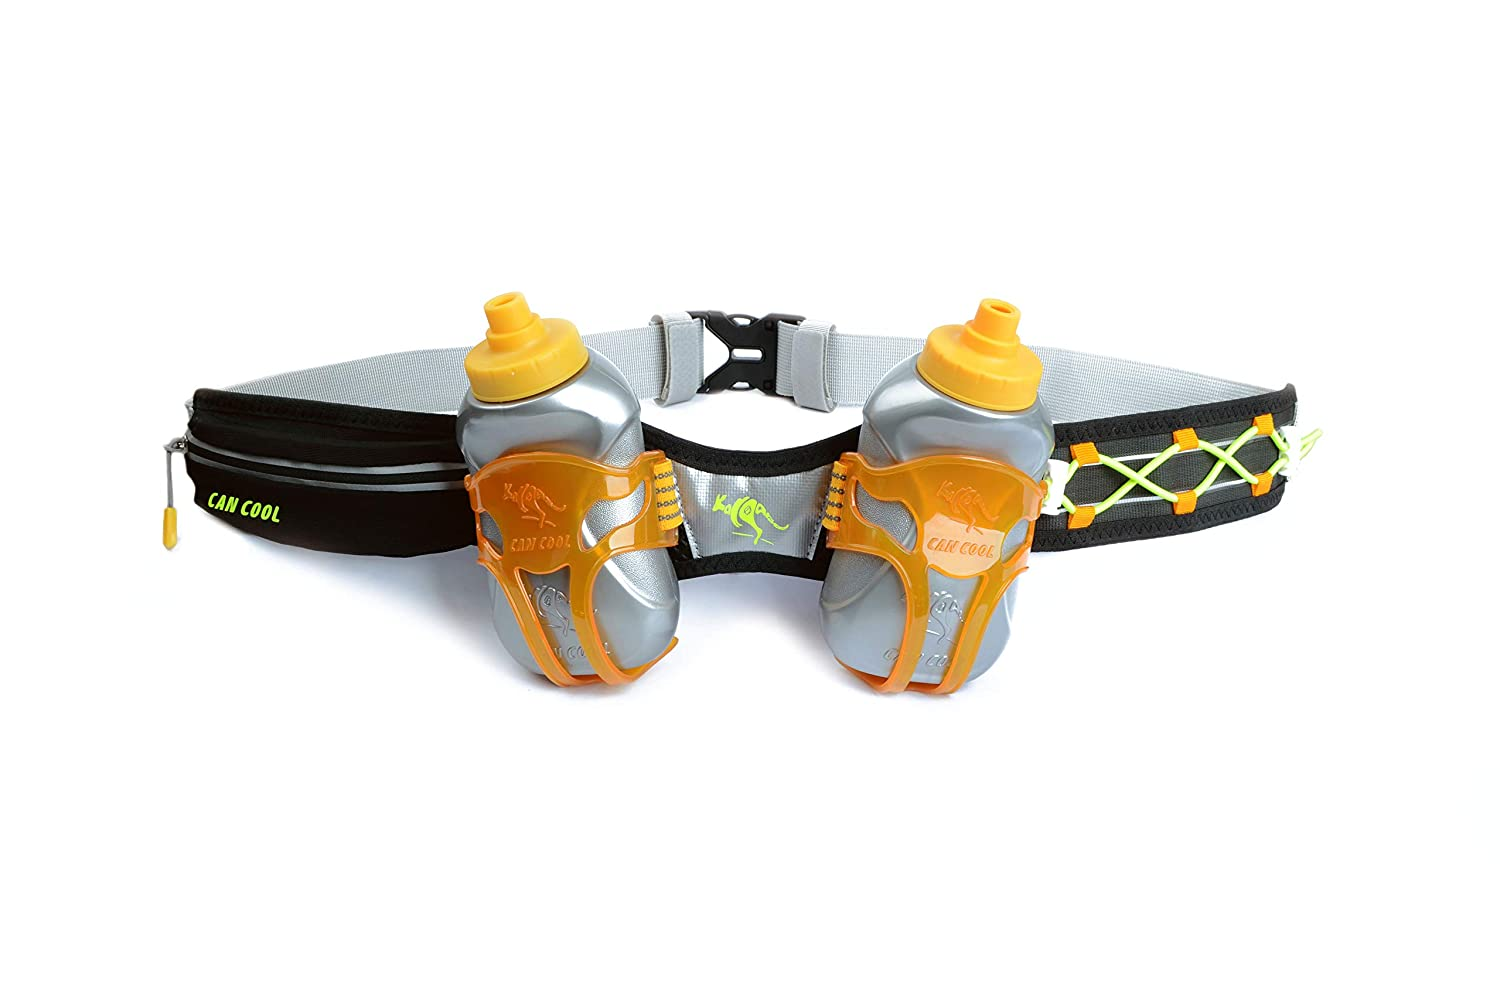 247 Viz Hydration Belt – Fits iPhone 8, X and Similar Phones – with 2 BPA Free Water Bottles and Pouch System – Running Fuel Belt Runners Reflective Gear for High Visibility